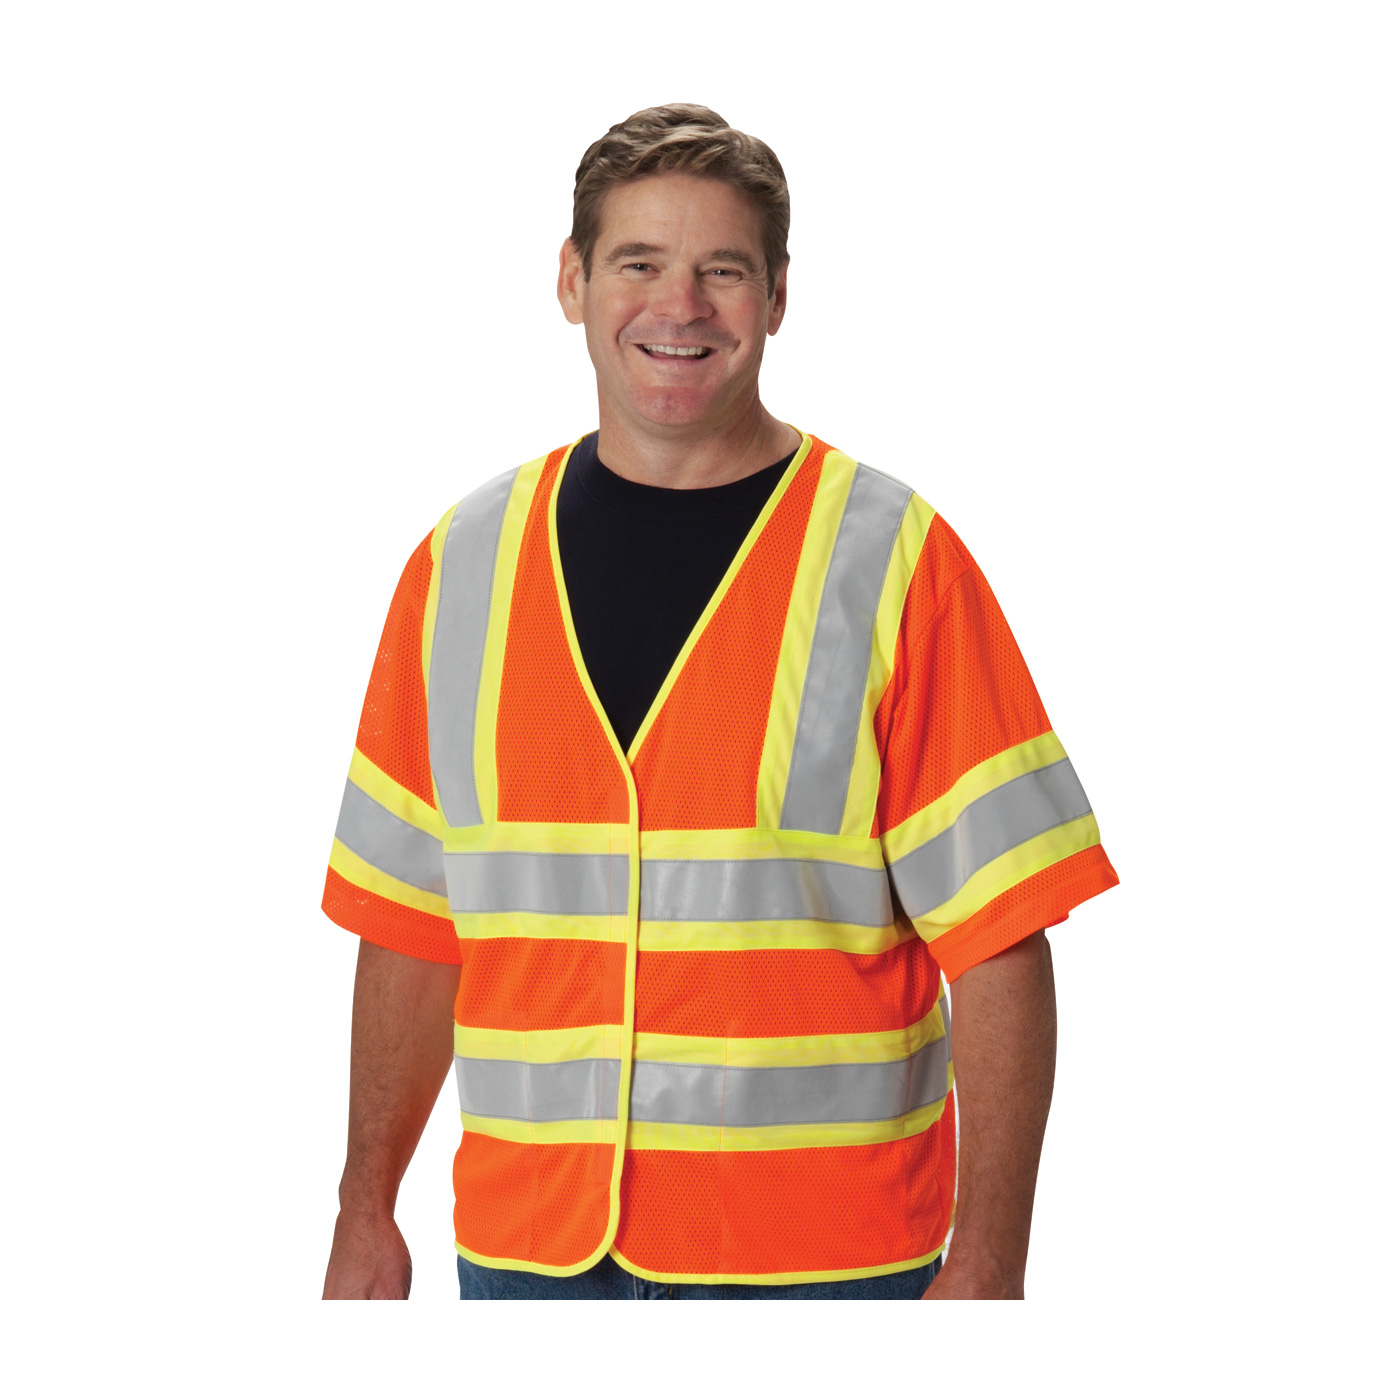 PIP 305-HSVPFROR ANSI Class 3 FR-Treated Mesh Vest, Orange, 2 Internal Pockets